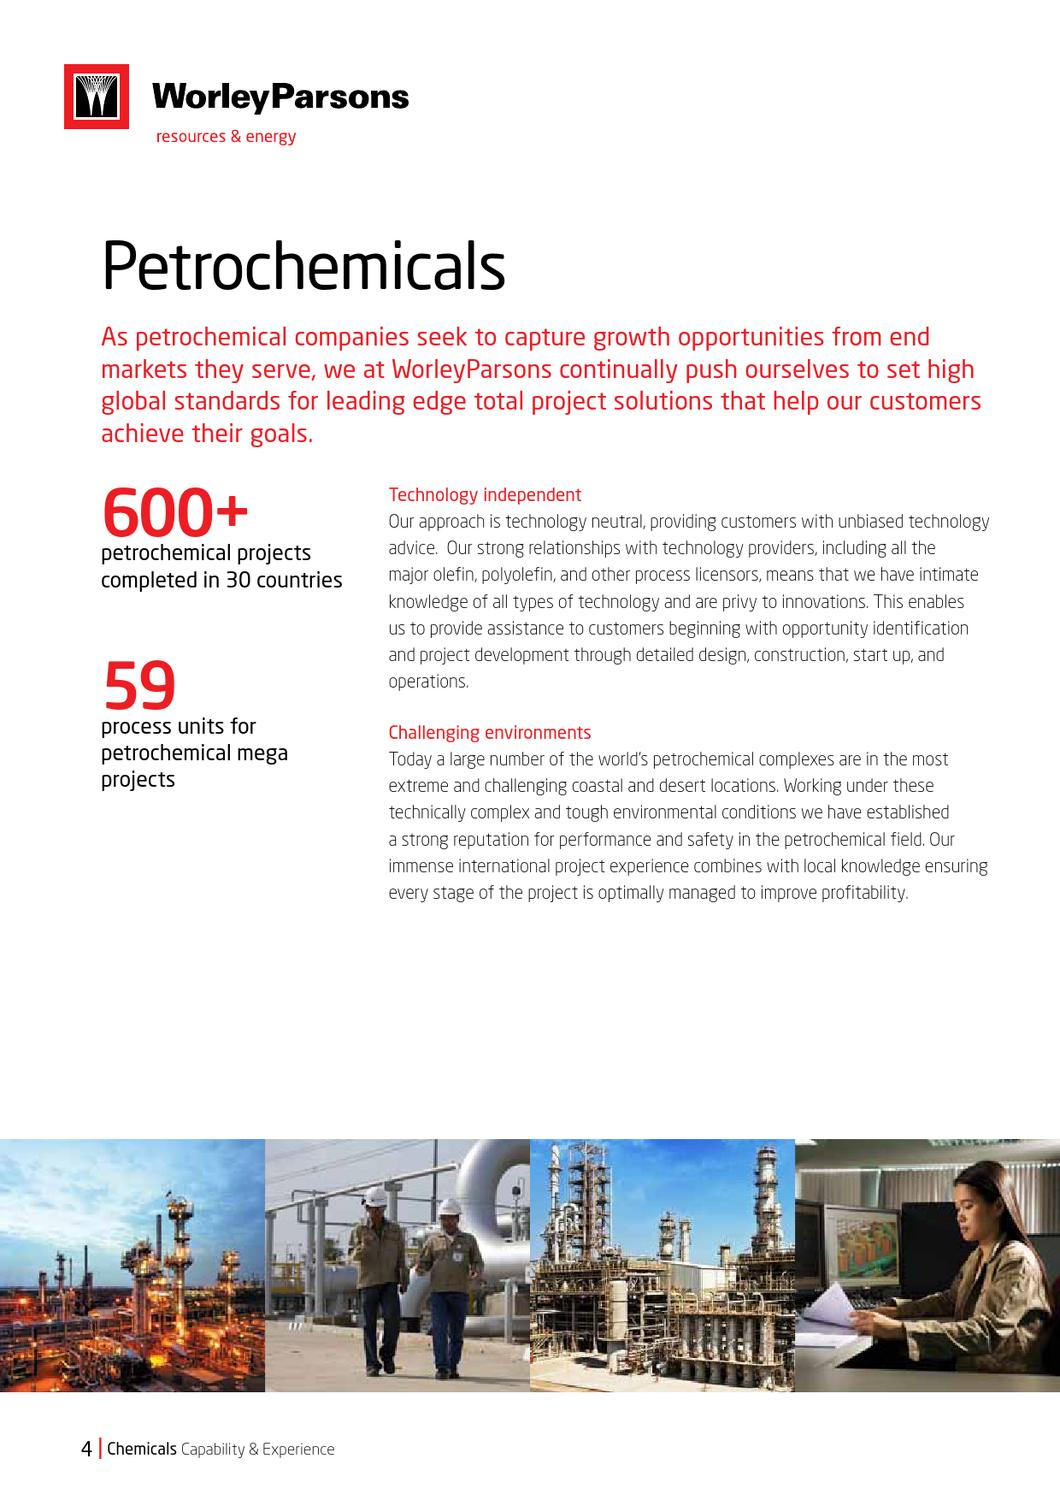 Chemicals Capability and Experience brochure